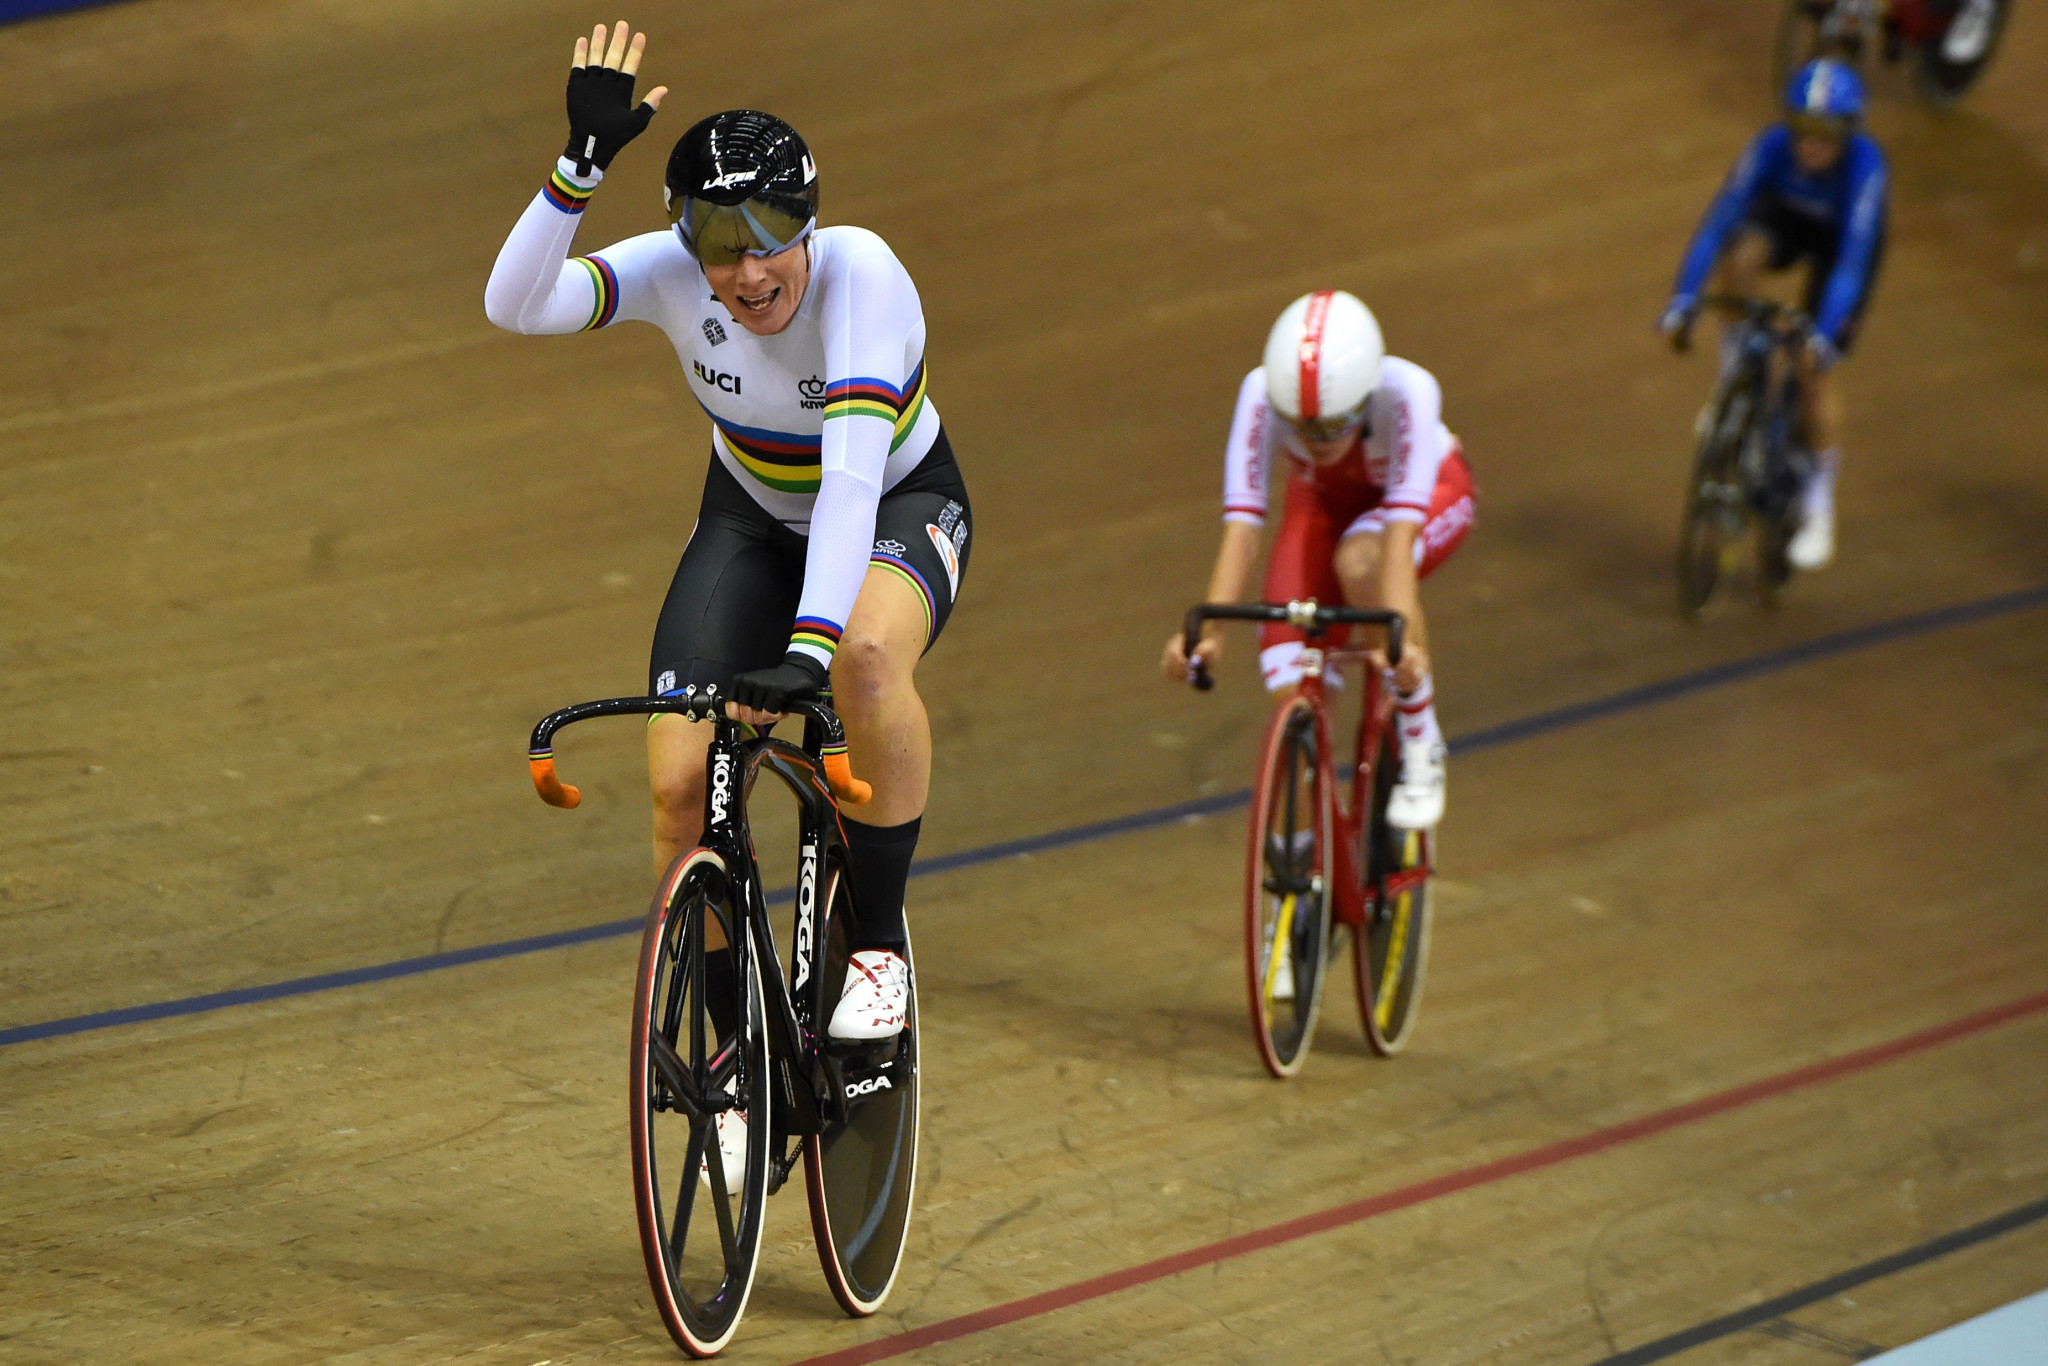 Kirsten Wild triumphed in the women's omnium competition ©Getty Images